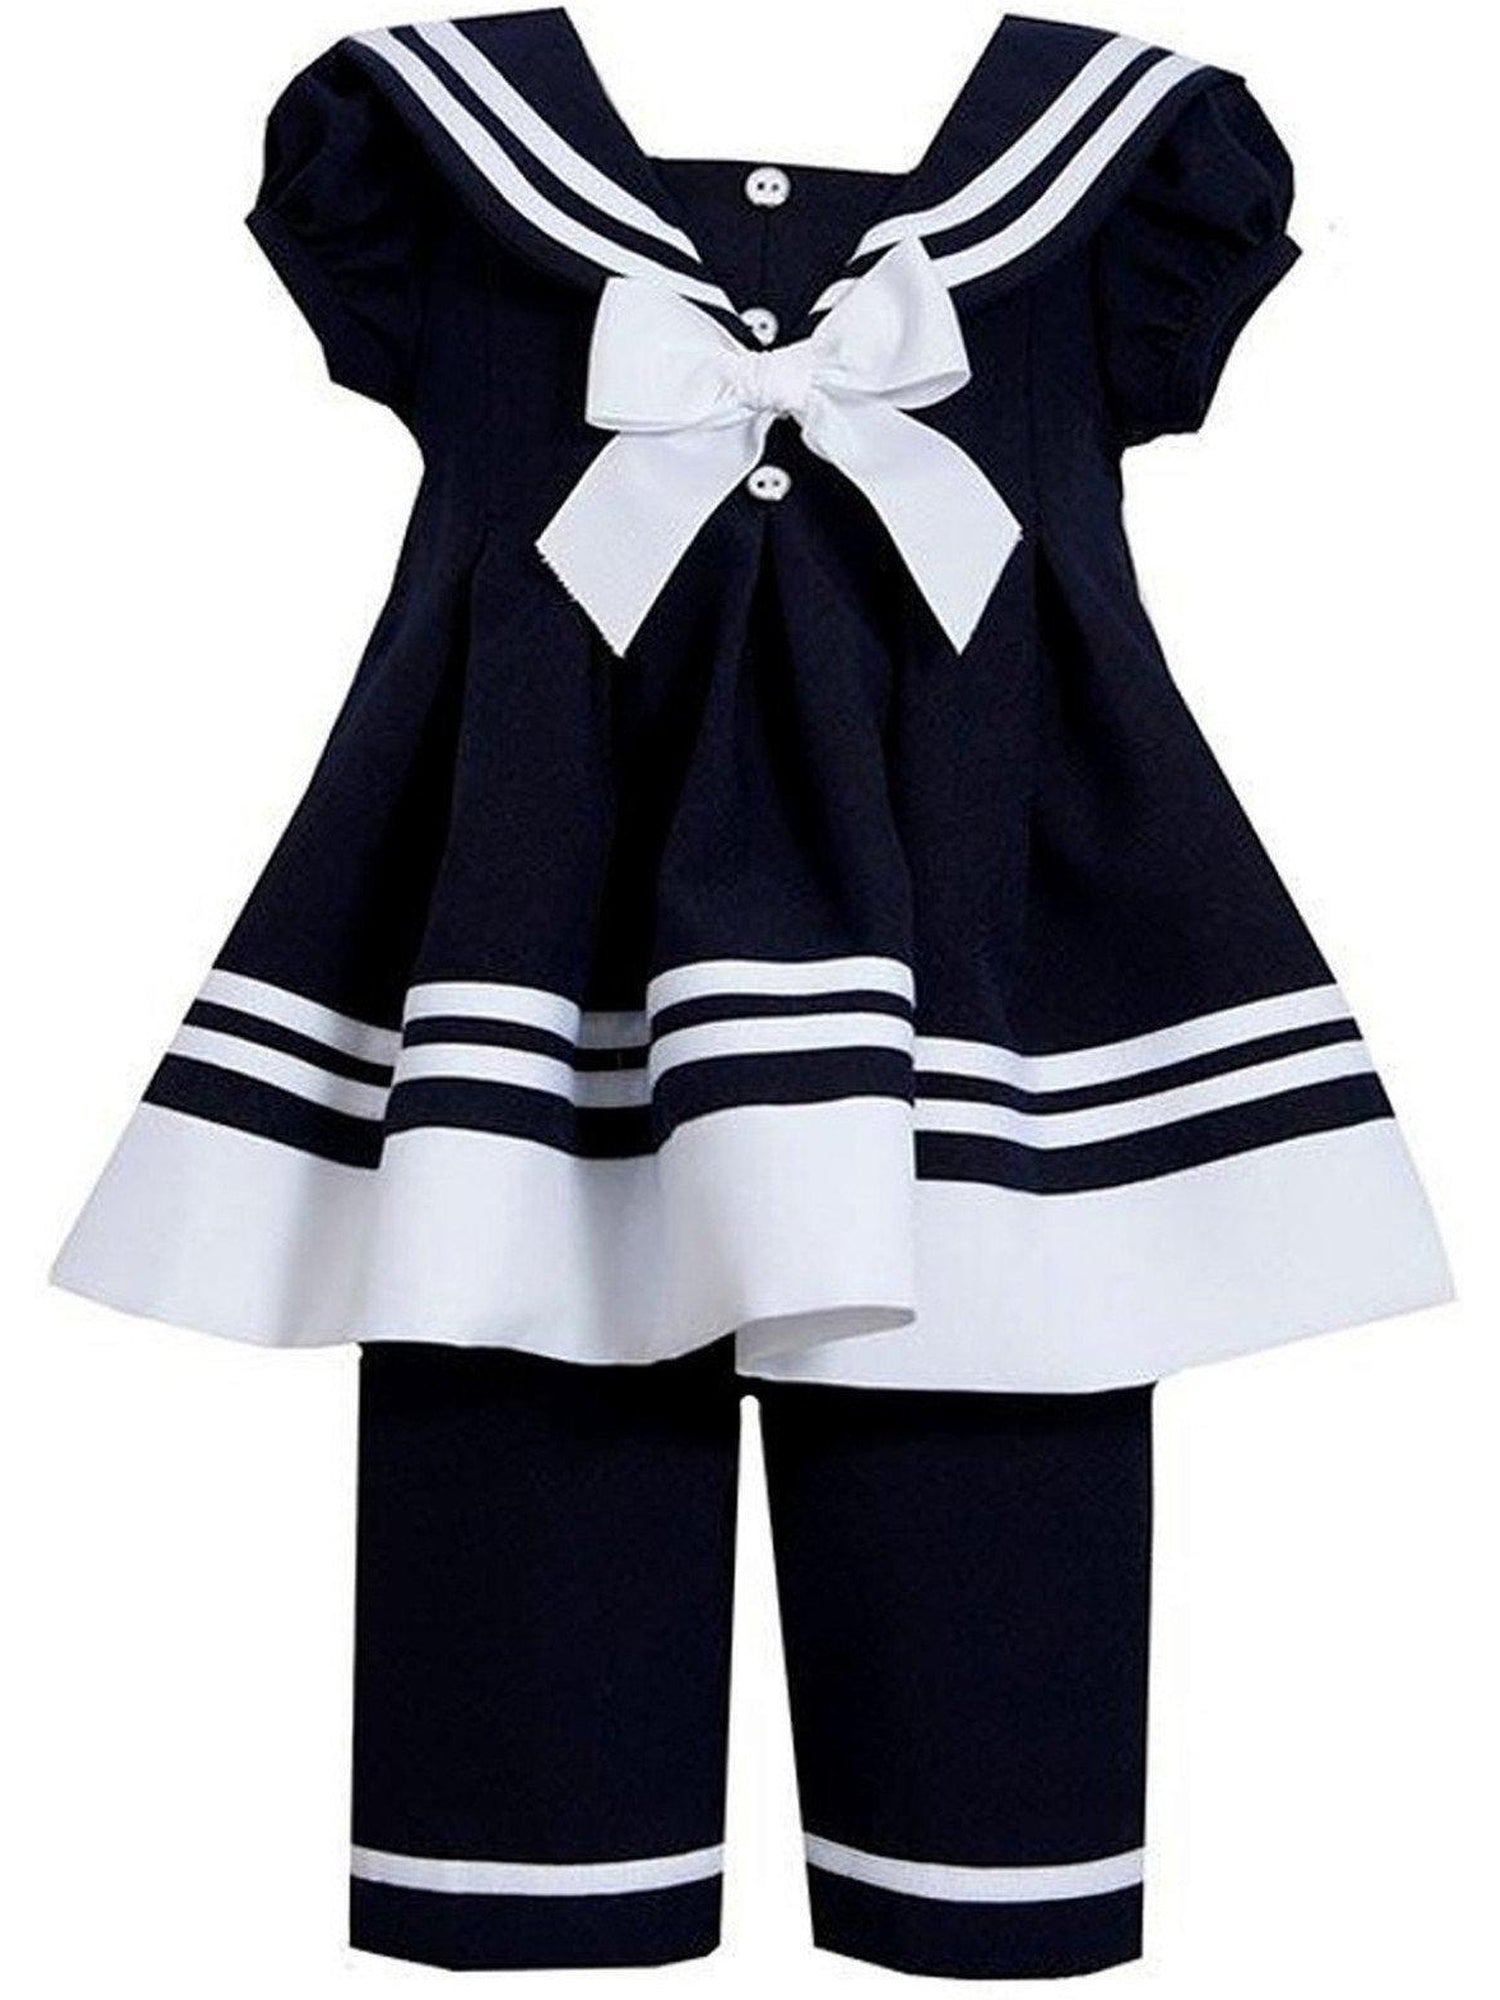 38eae24672c ... Bonnie Jean-Sailor Collar Set, Navy. (Size 4T)-Flash Sale